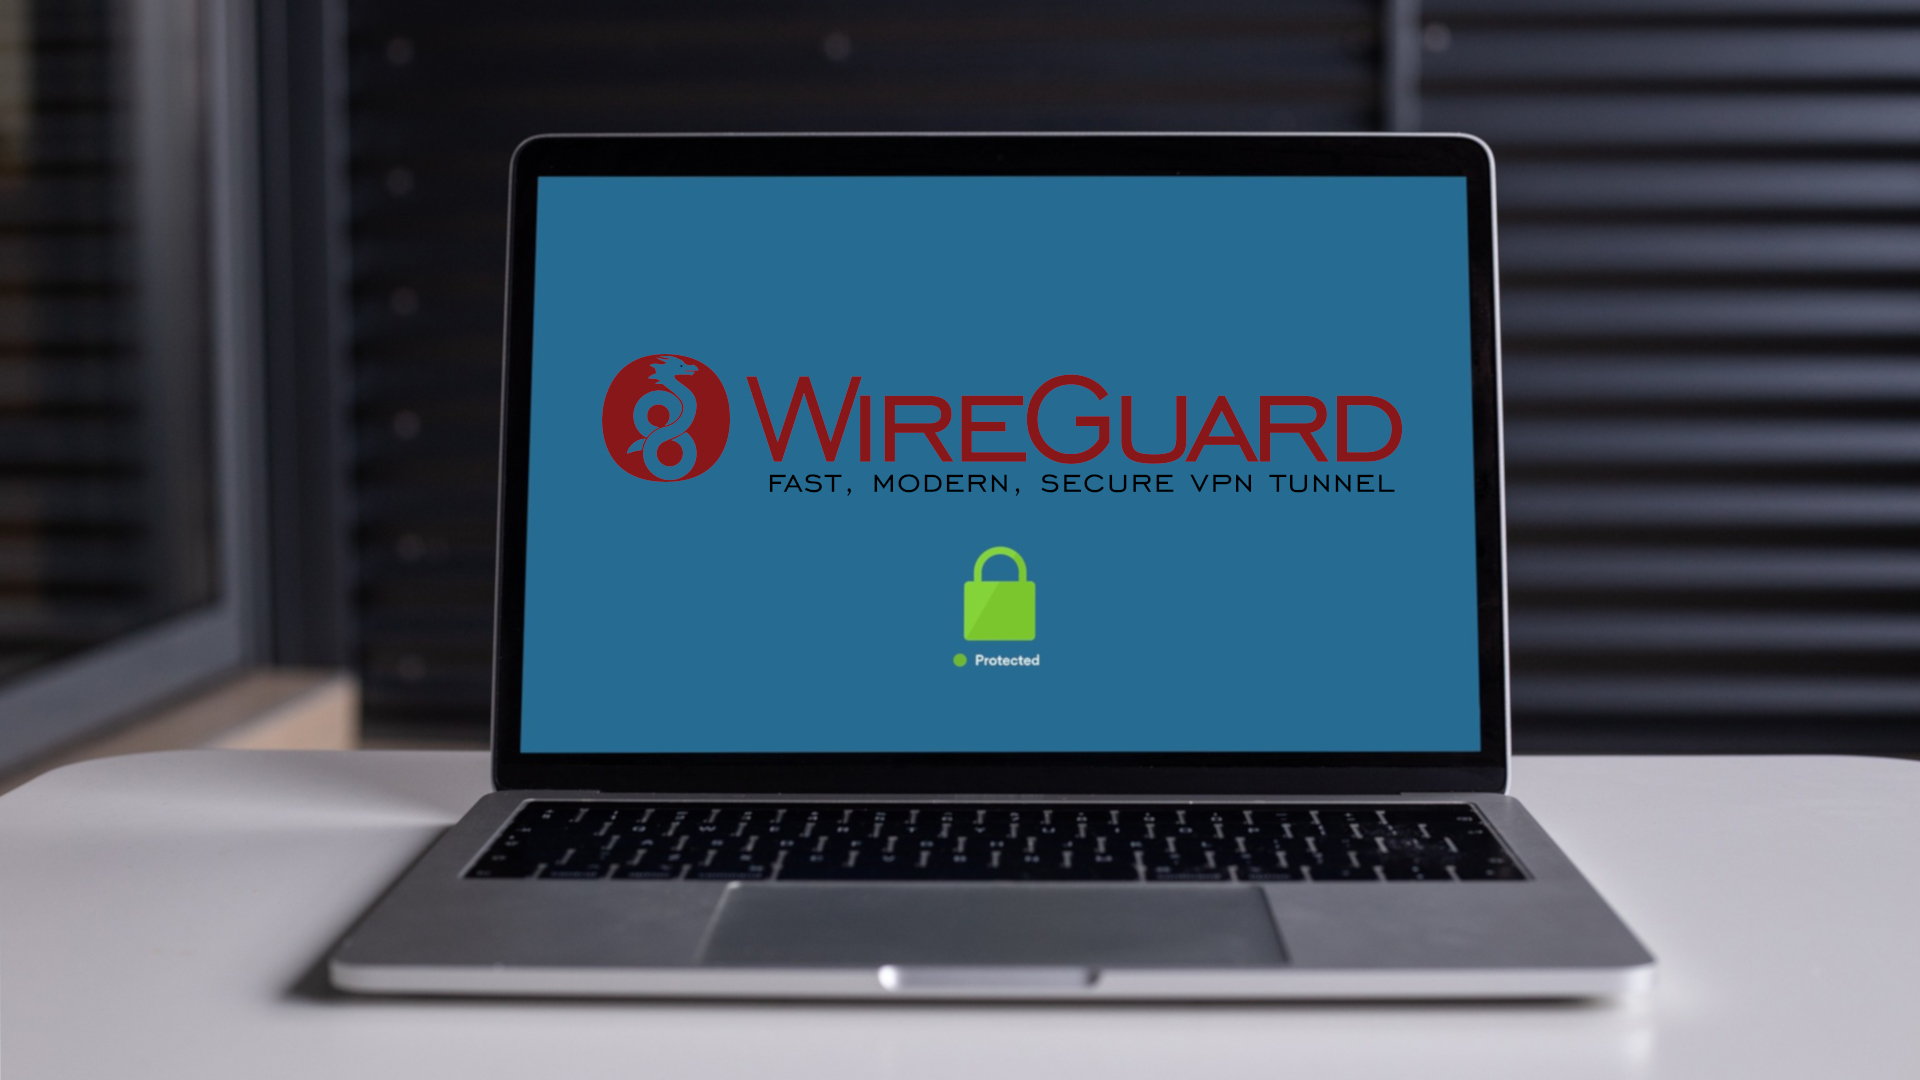 How to setup your own VPN server using WireGuard on Ubuntu